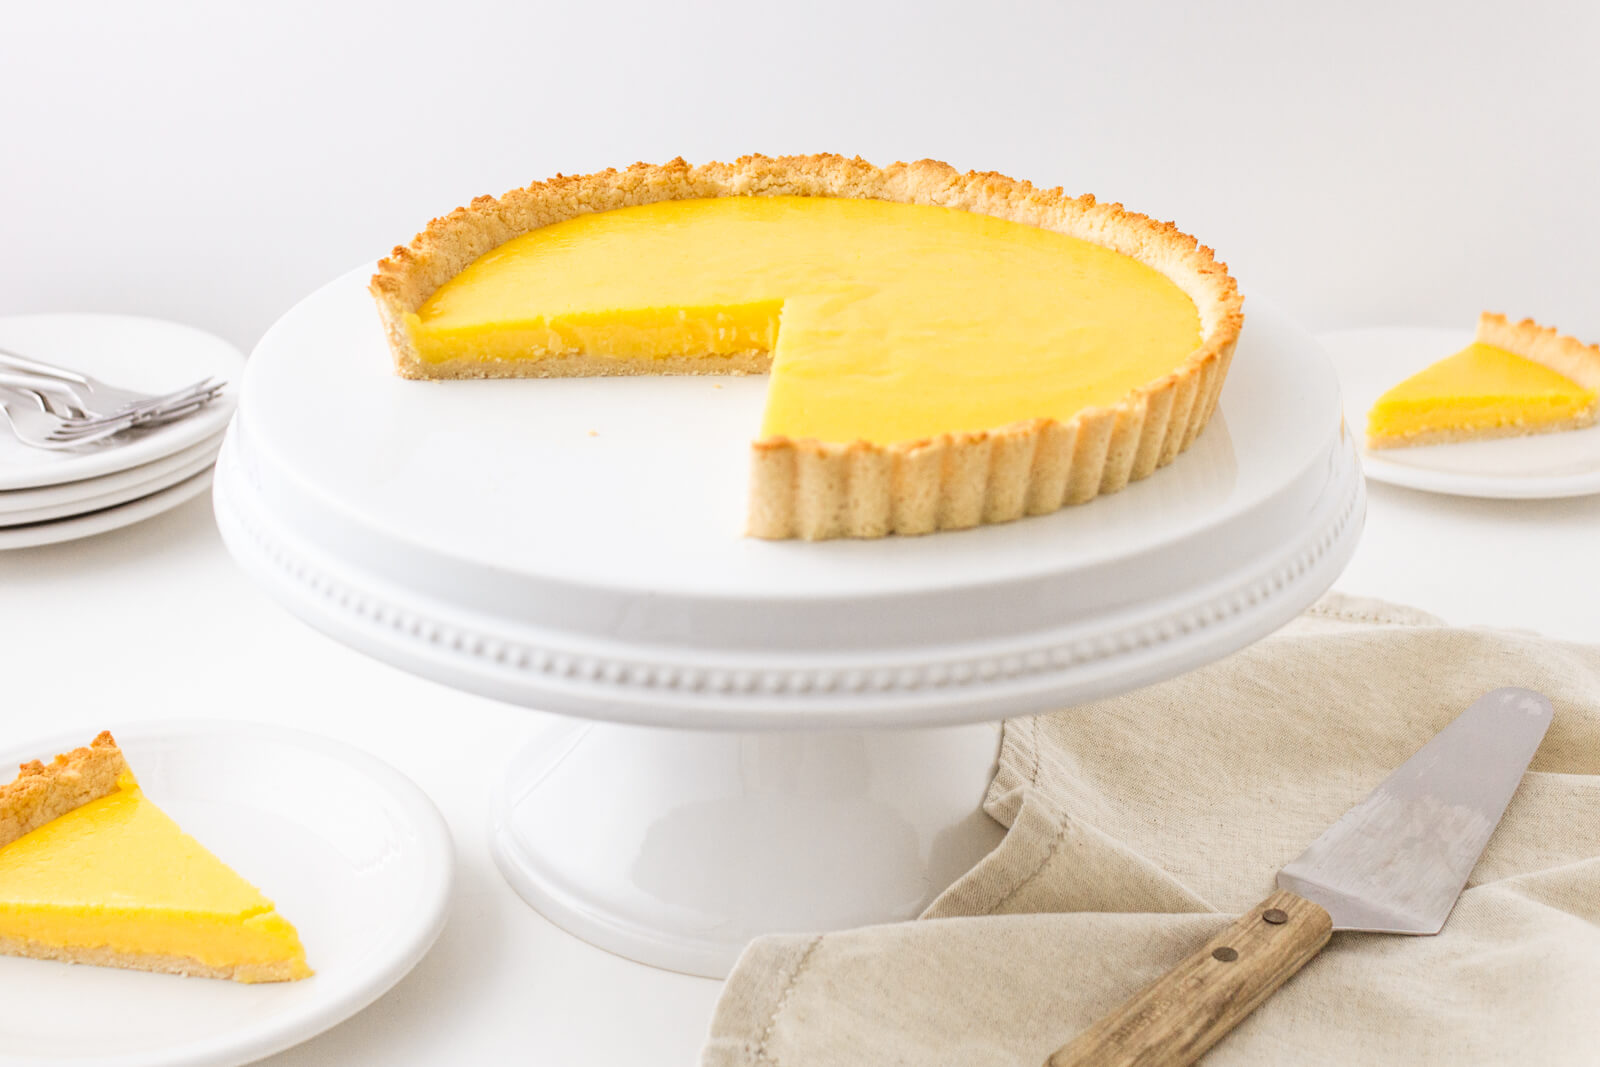 (-inch keto lemon curd tart on a white cake stand with two plates of low carb lemon curd tart slices, stack of white plates, and serving utensils for the tart